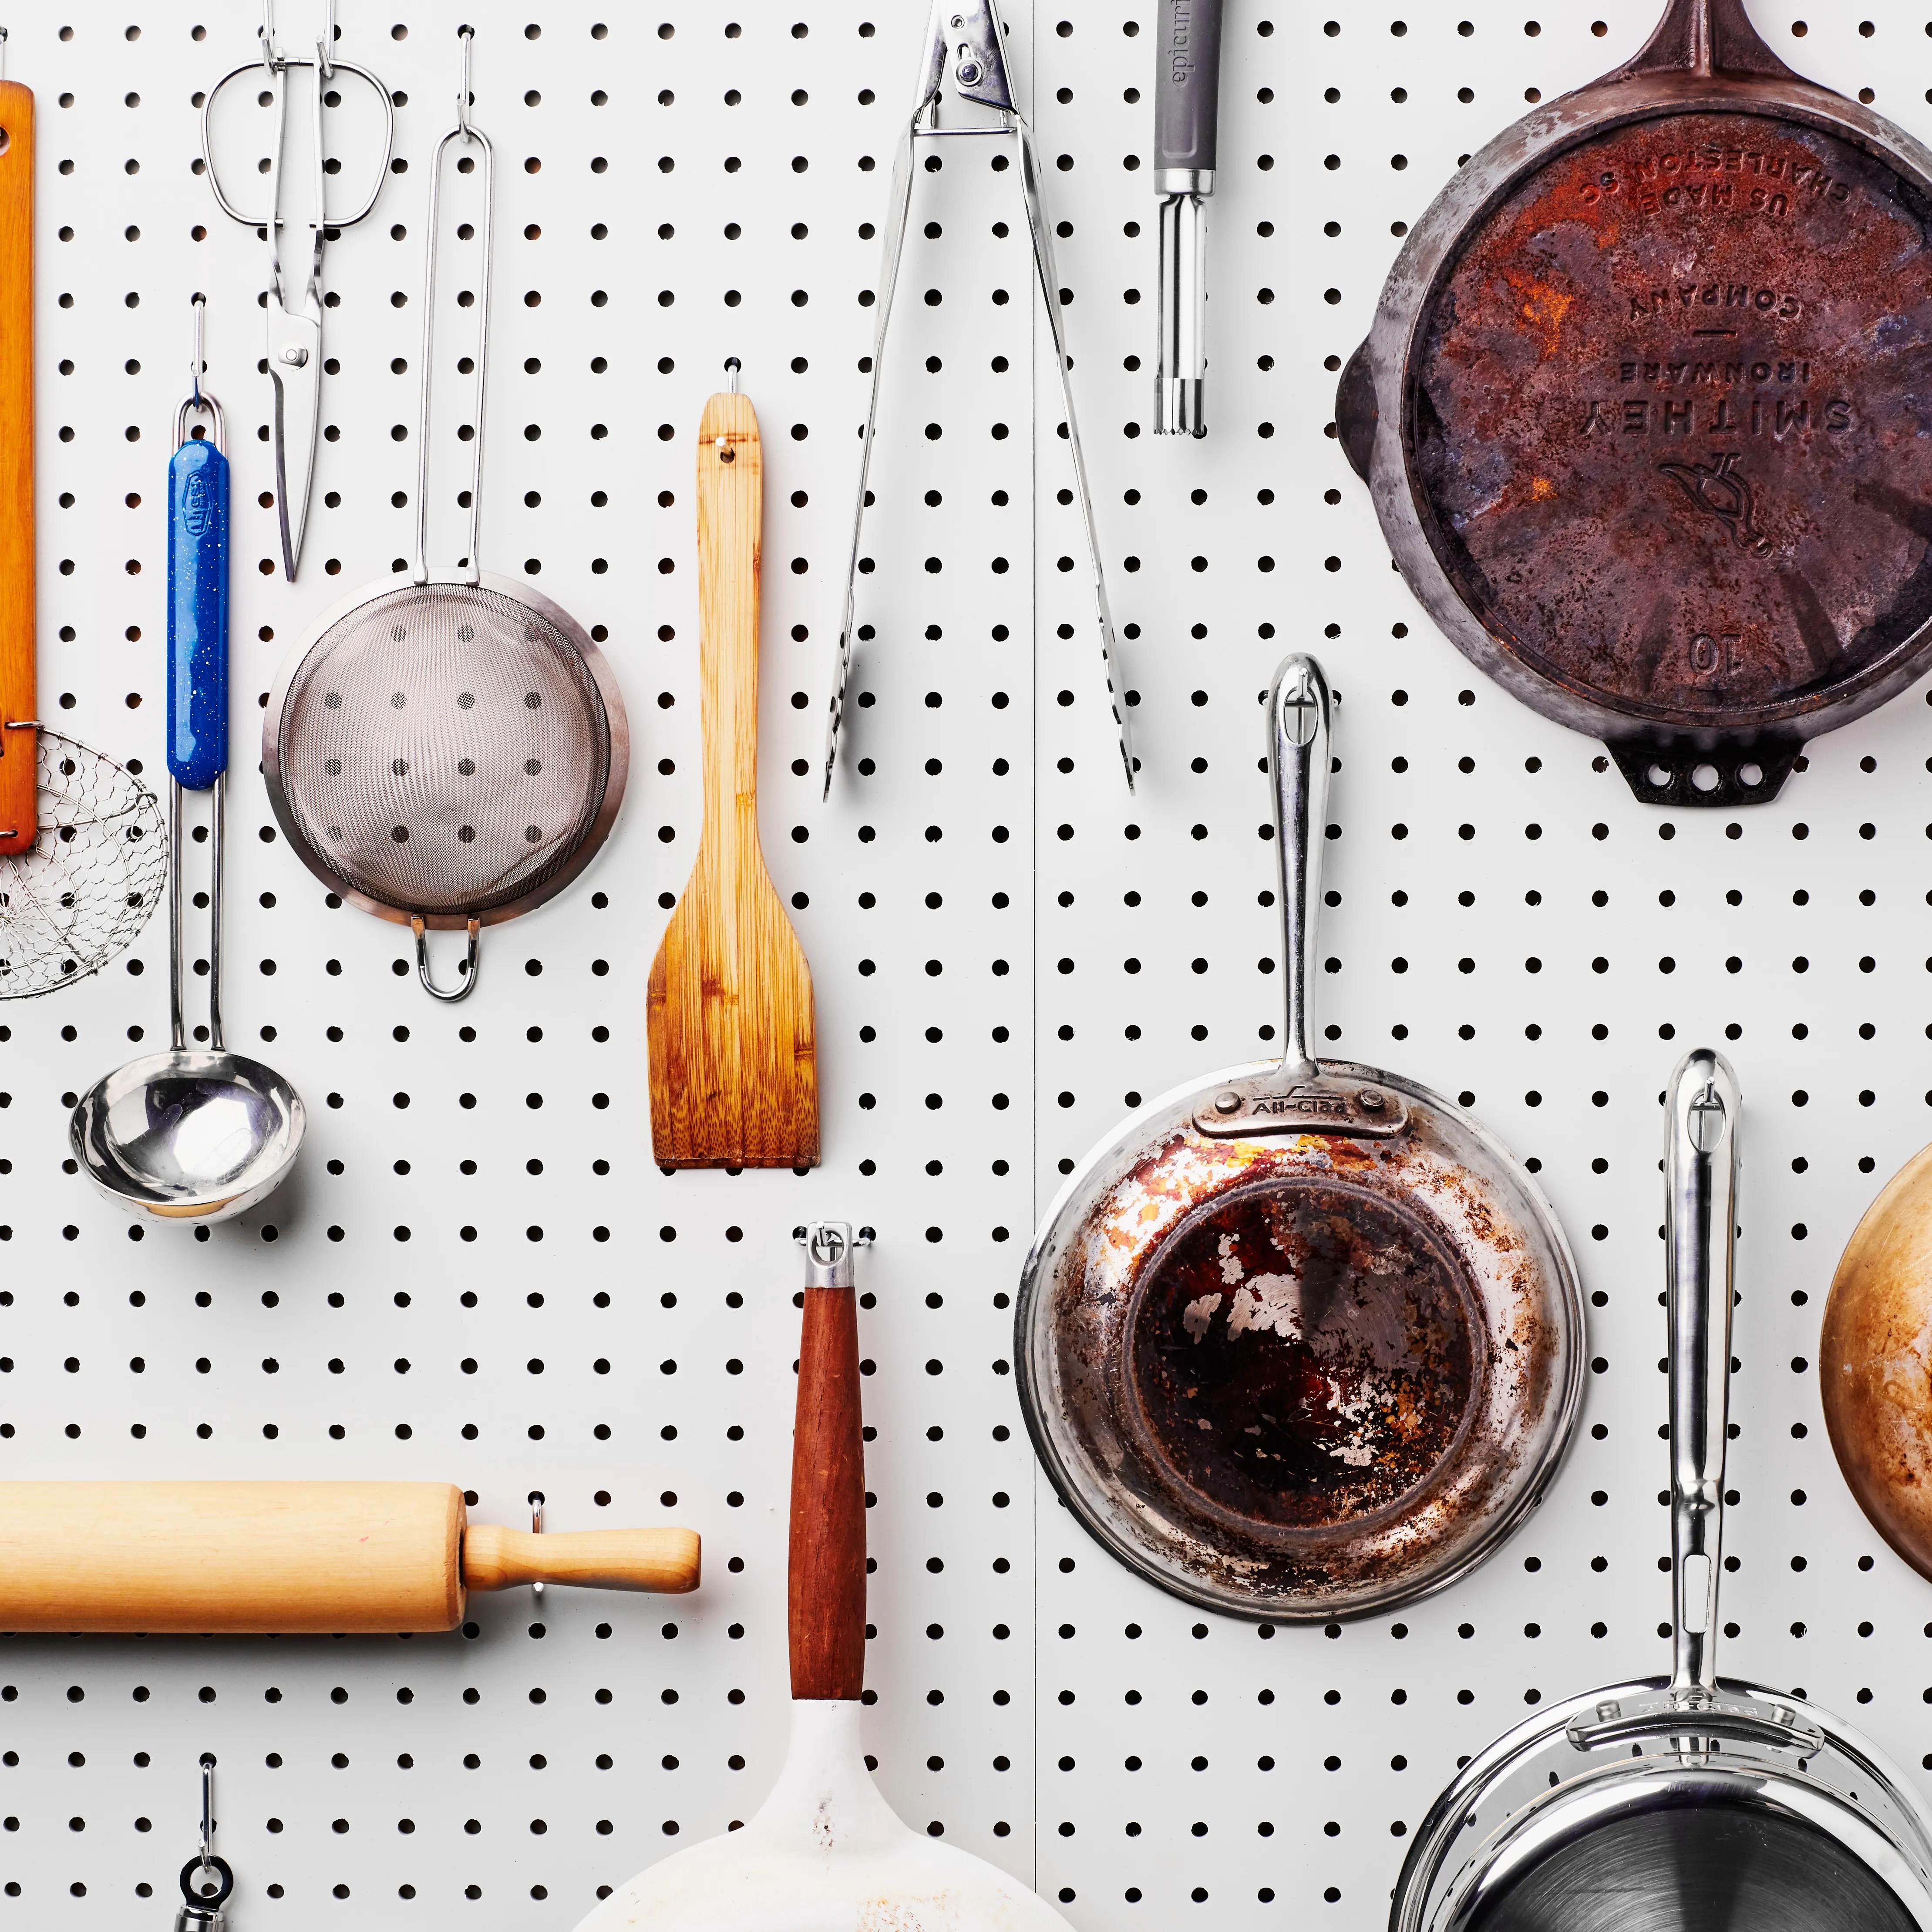 pegboard kitchen ikea pantry cabinets how to install in your and more organizing tips epicurious